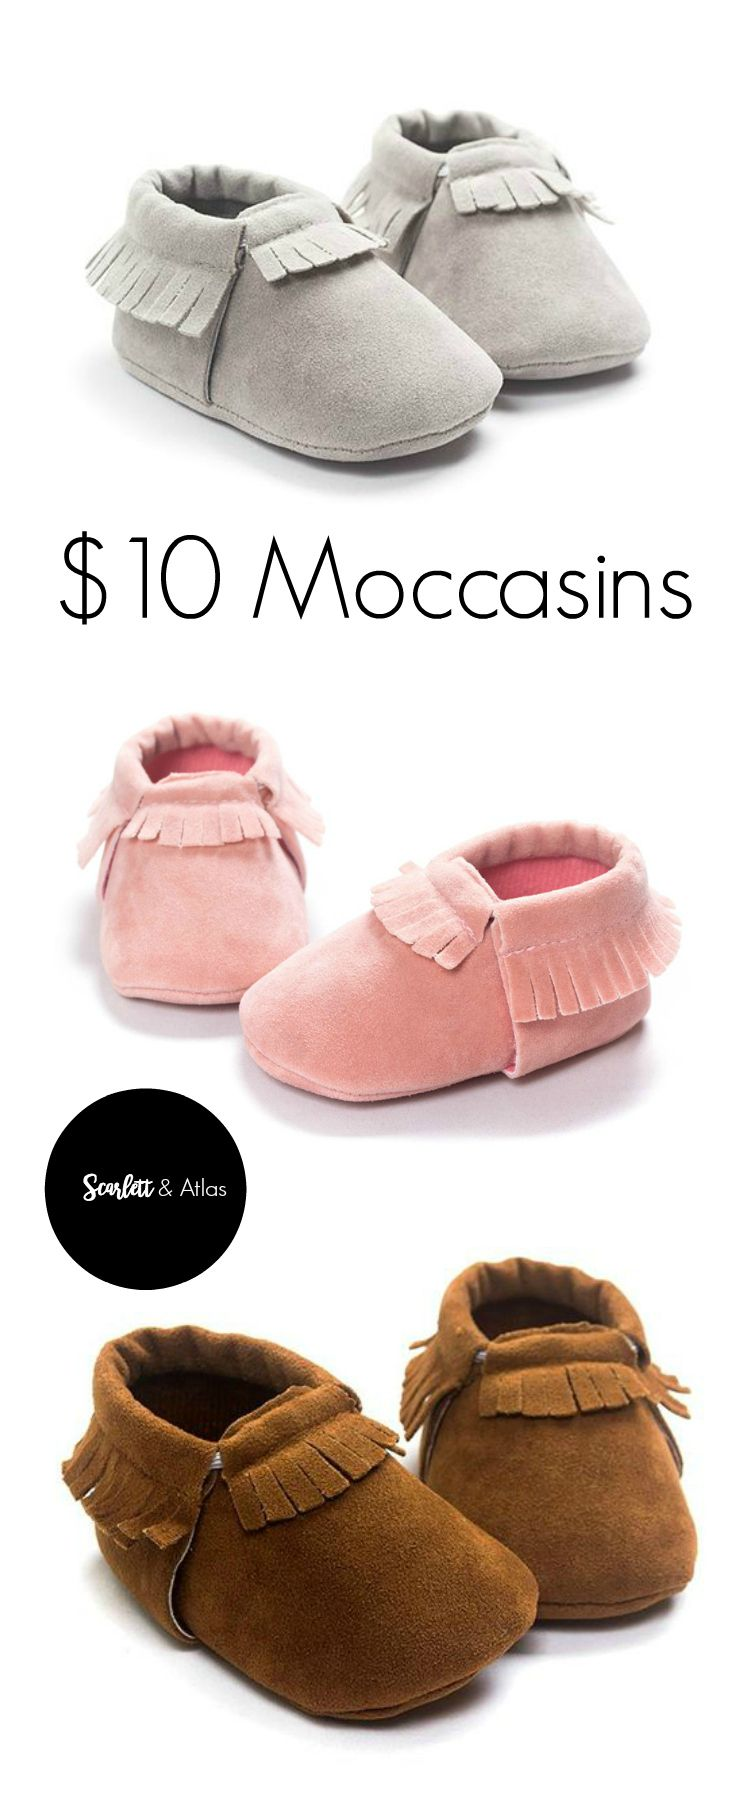 Cute baby moccasins for only $10 a pair